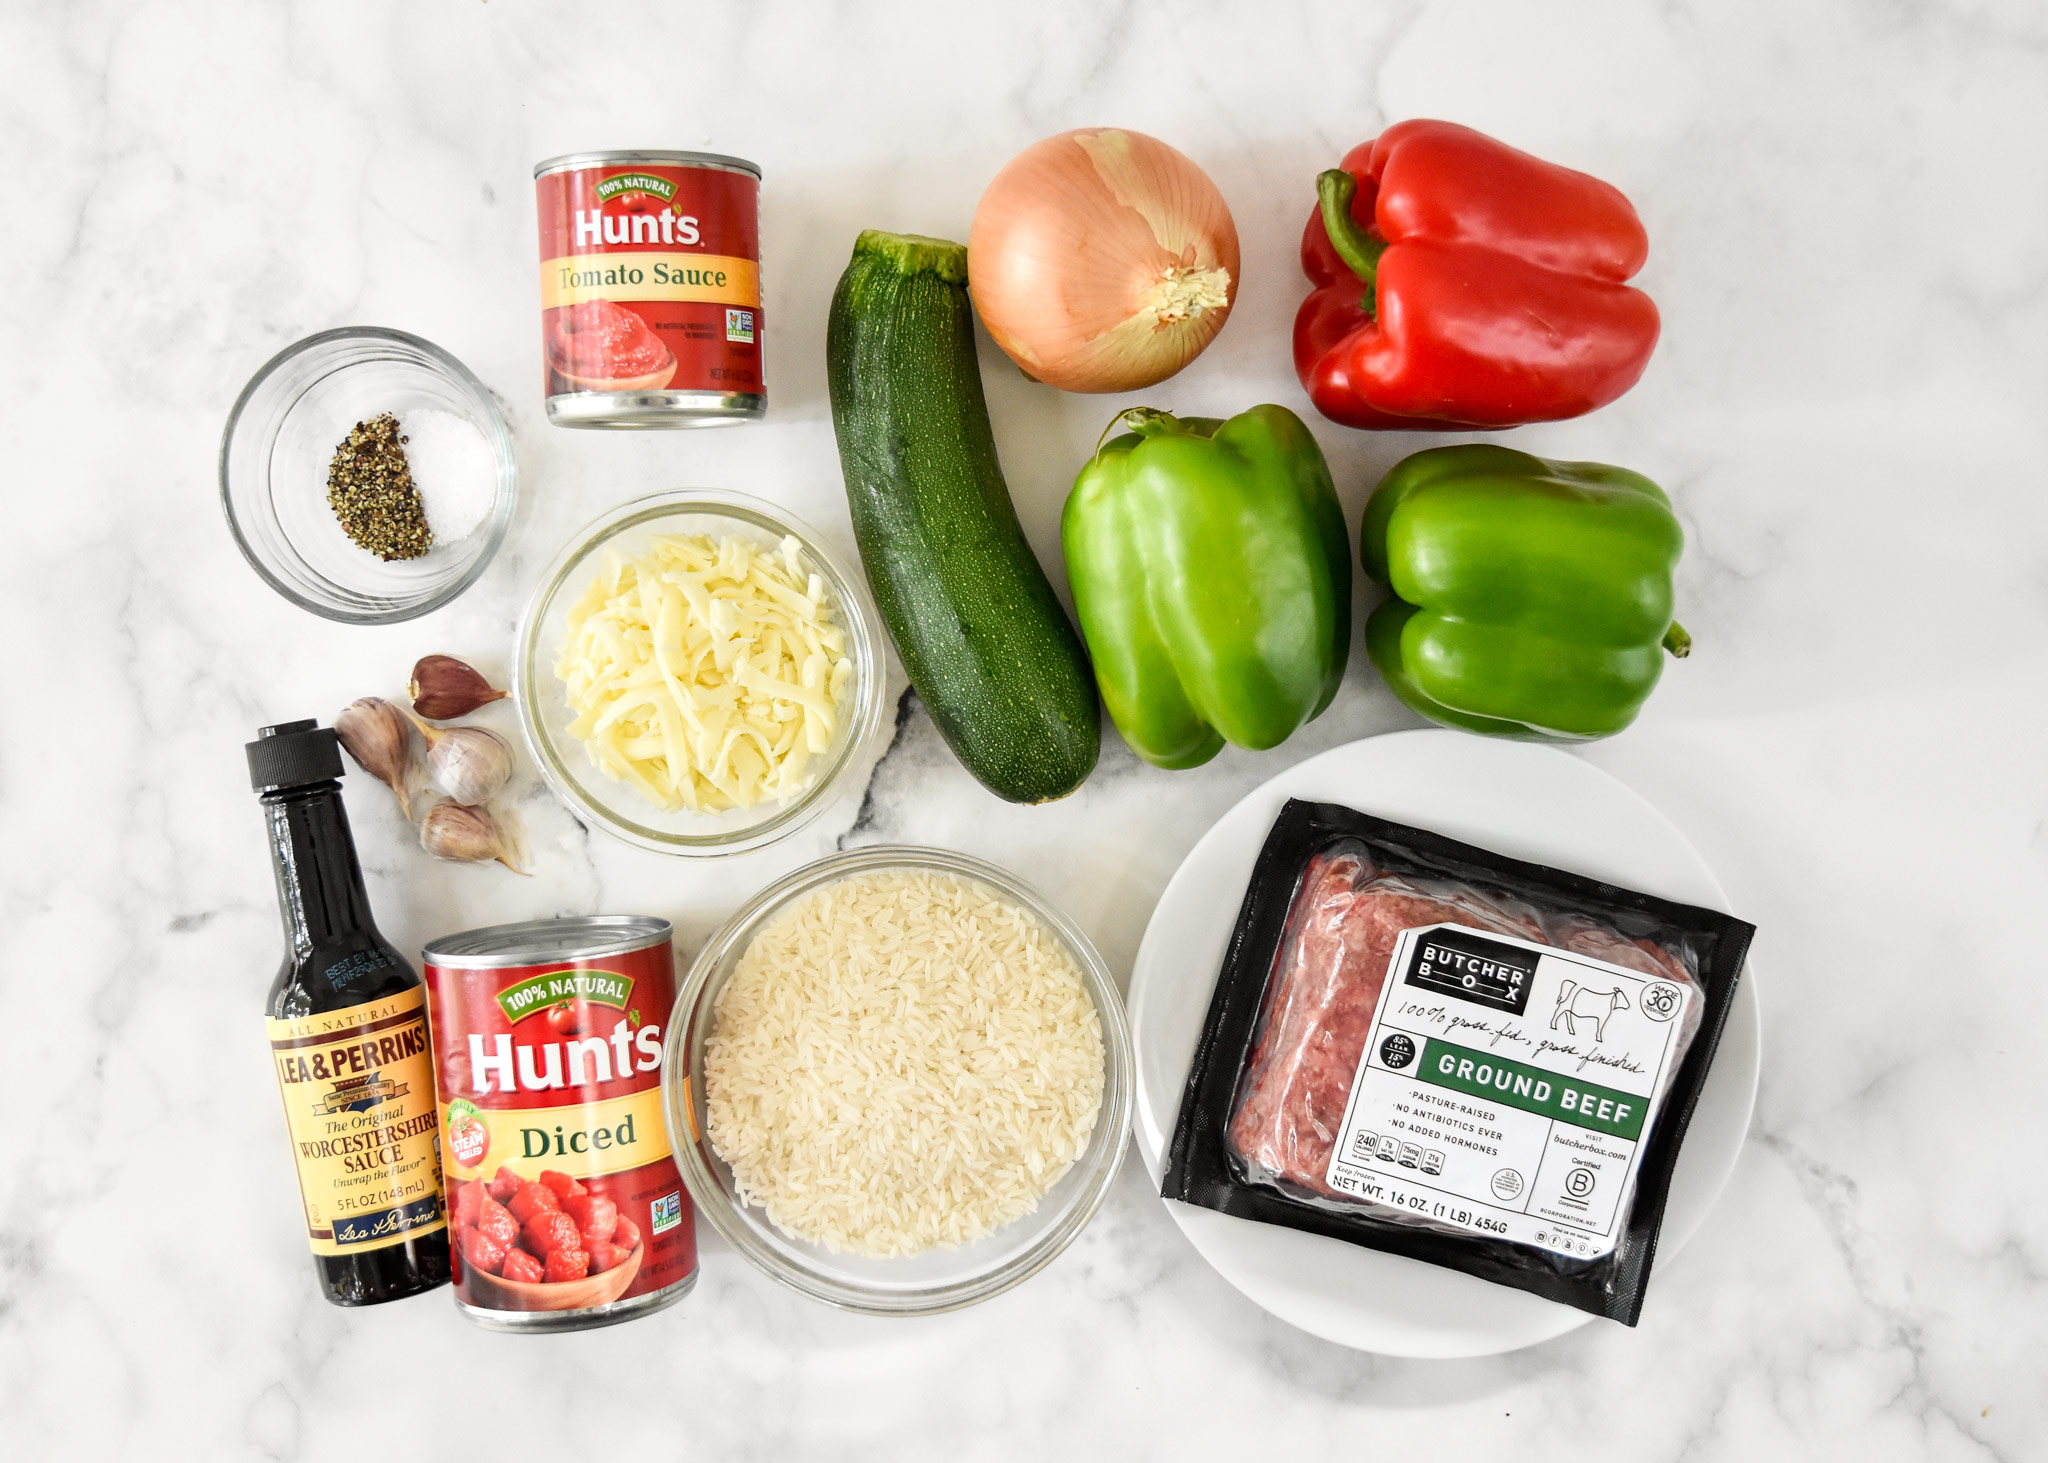 ingredients laid out for the unstuffed pepper bowls including red and green bell peppers.